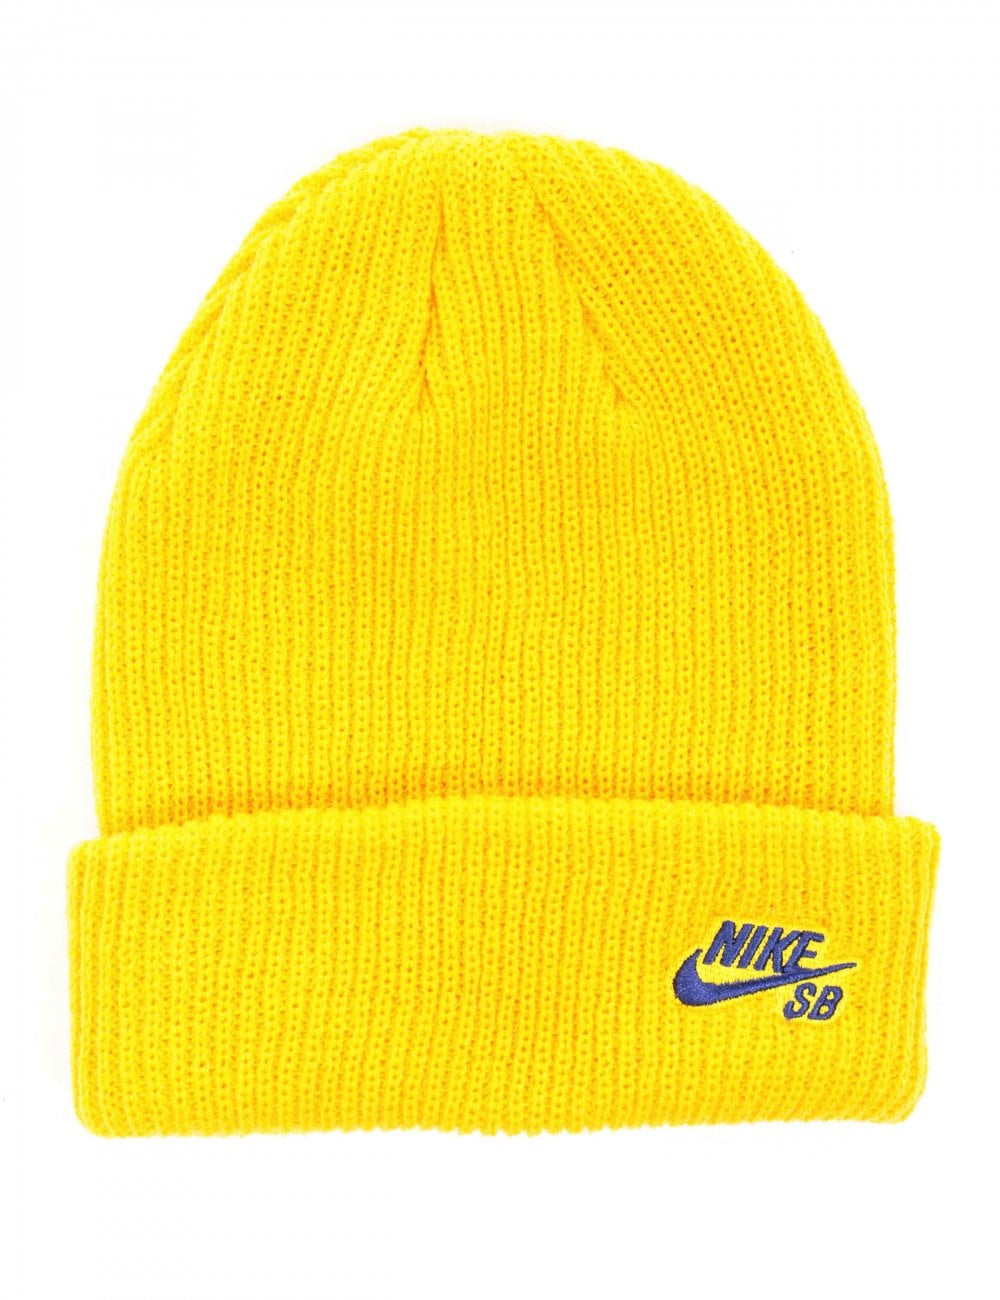 Nike SB Fisherman Beanie Hat - Yellow Ochre - Accessories from Fat ... 62f839feaab